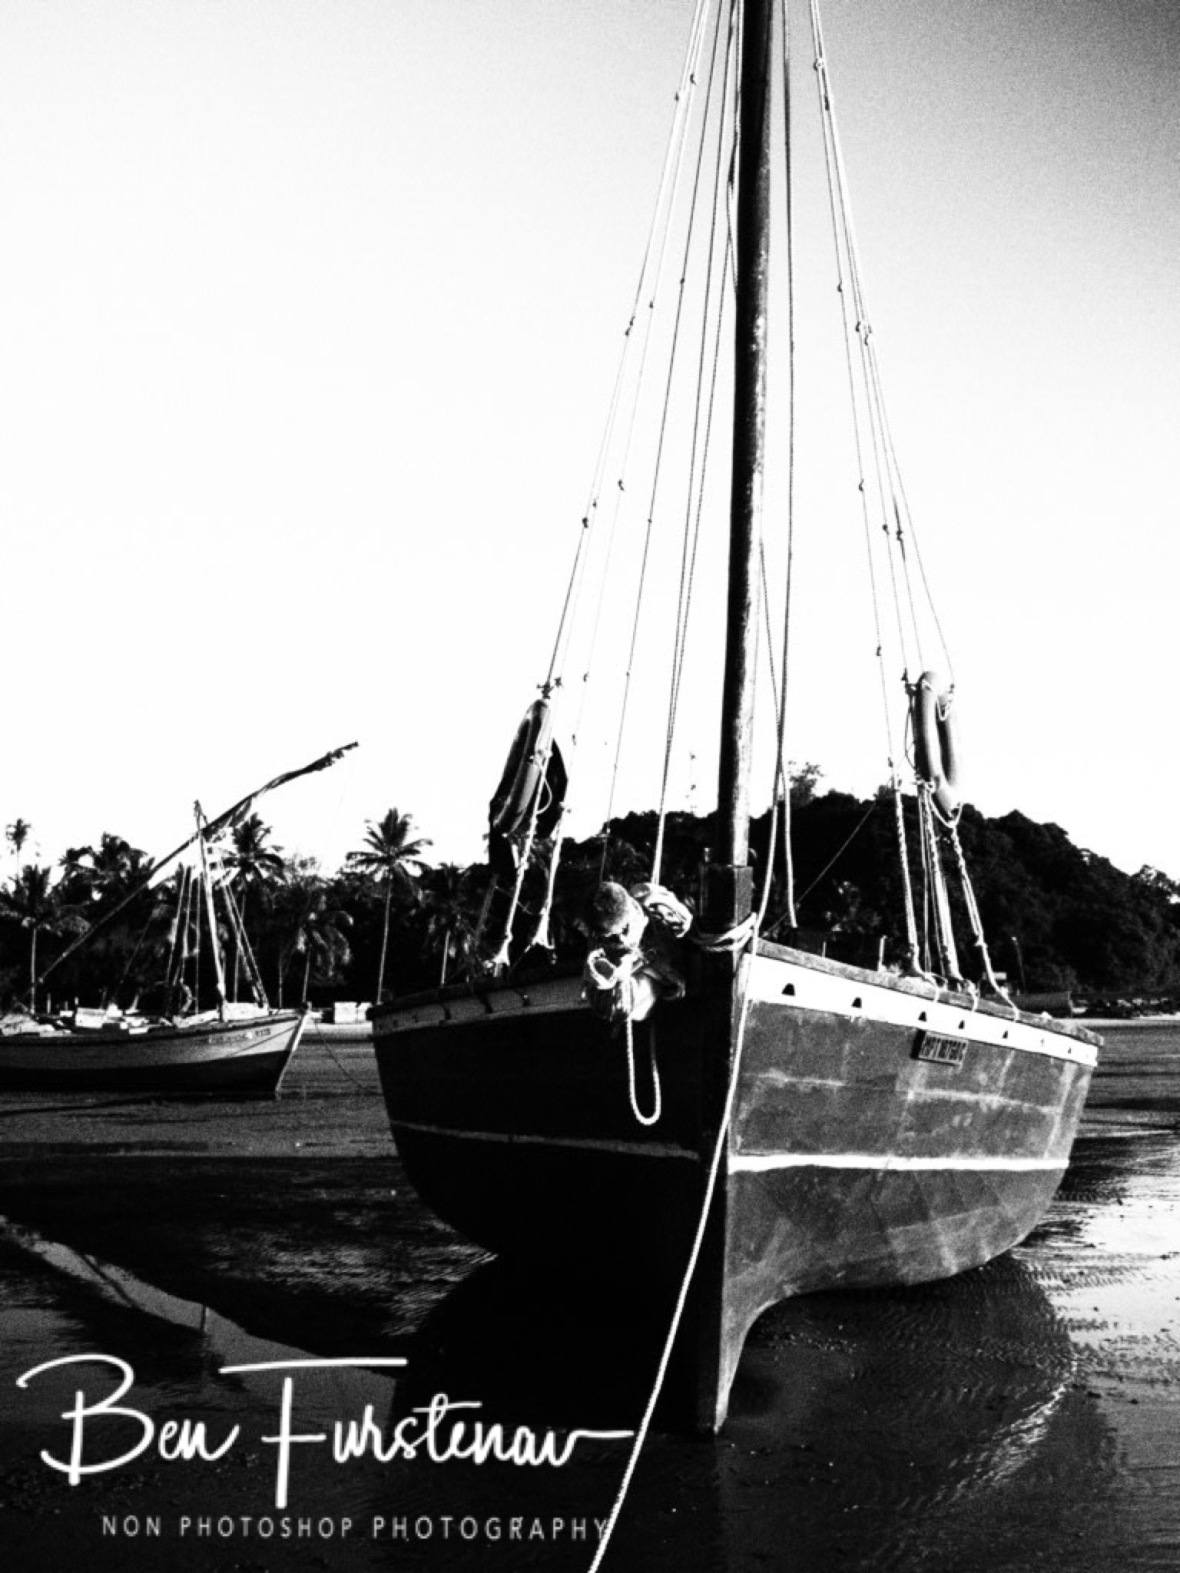 Dhow in Black and White, Inhaca Island